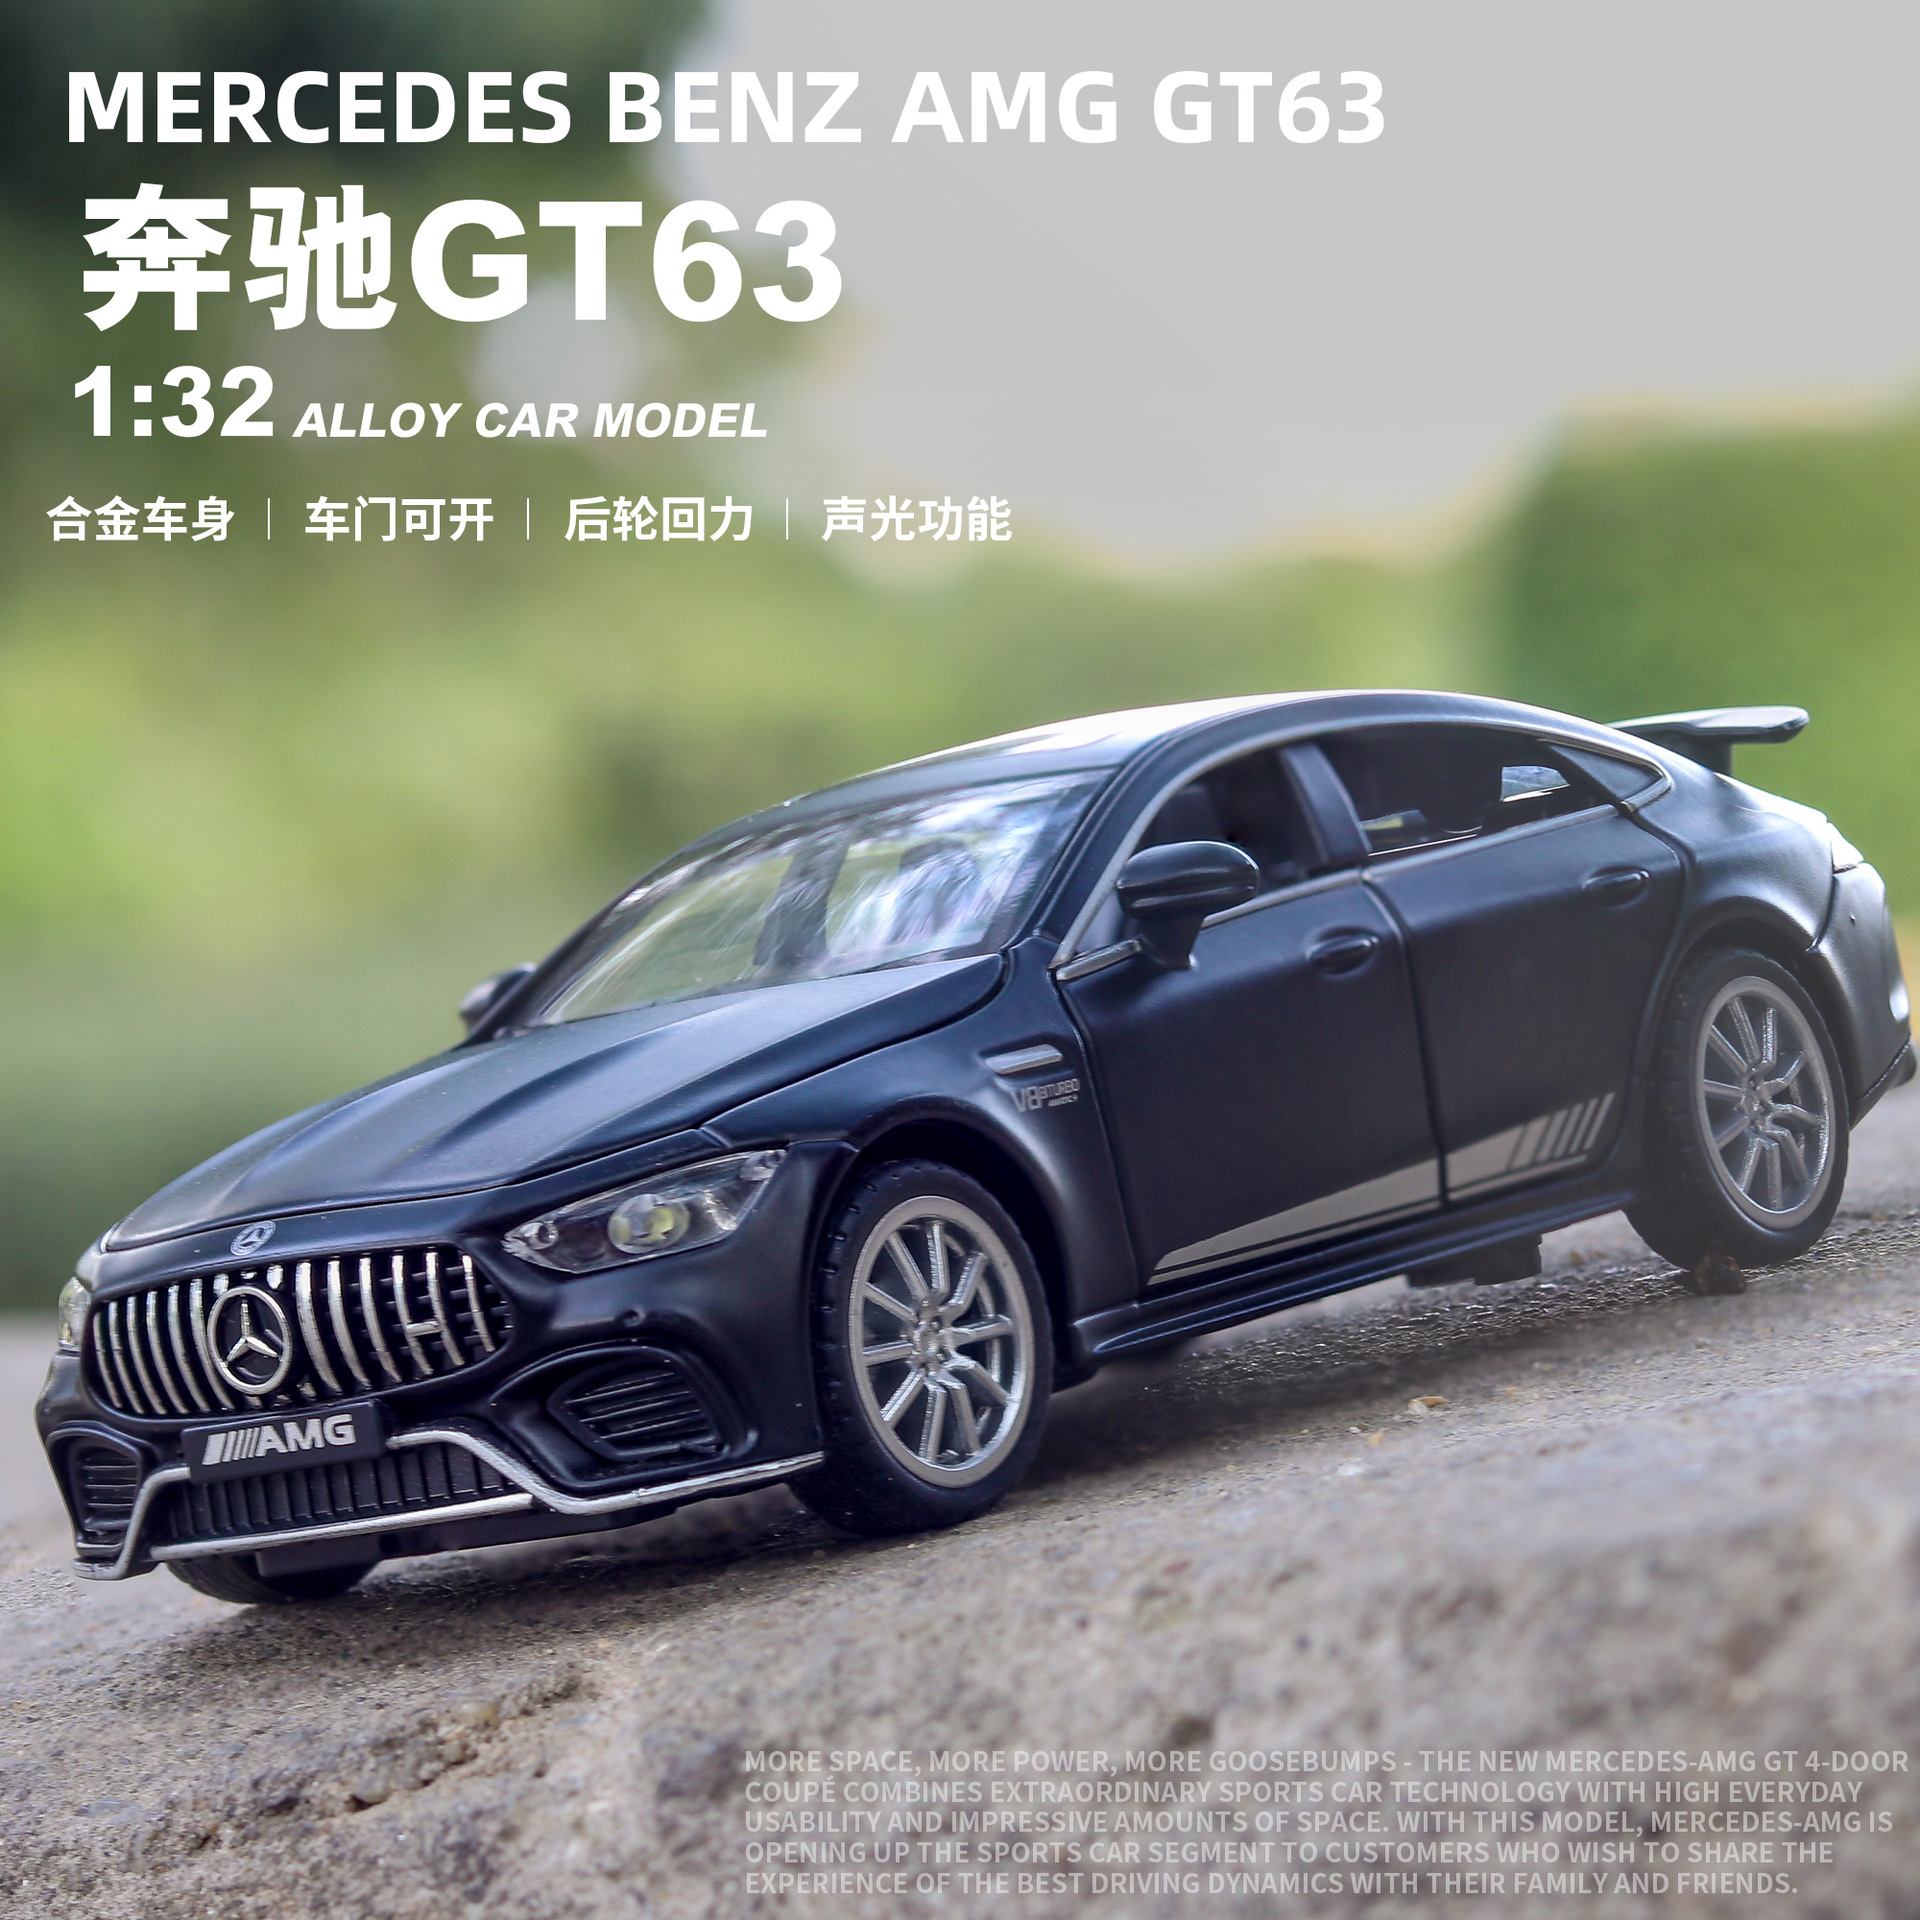 1:32 BENZ AMG GT63 Alloy Car Model Diecasts Toy Vehicles Toy Cars Educational Toys For Children Gifts Boy Toy toys for children